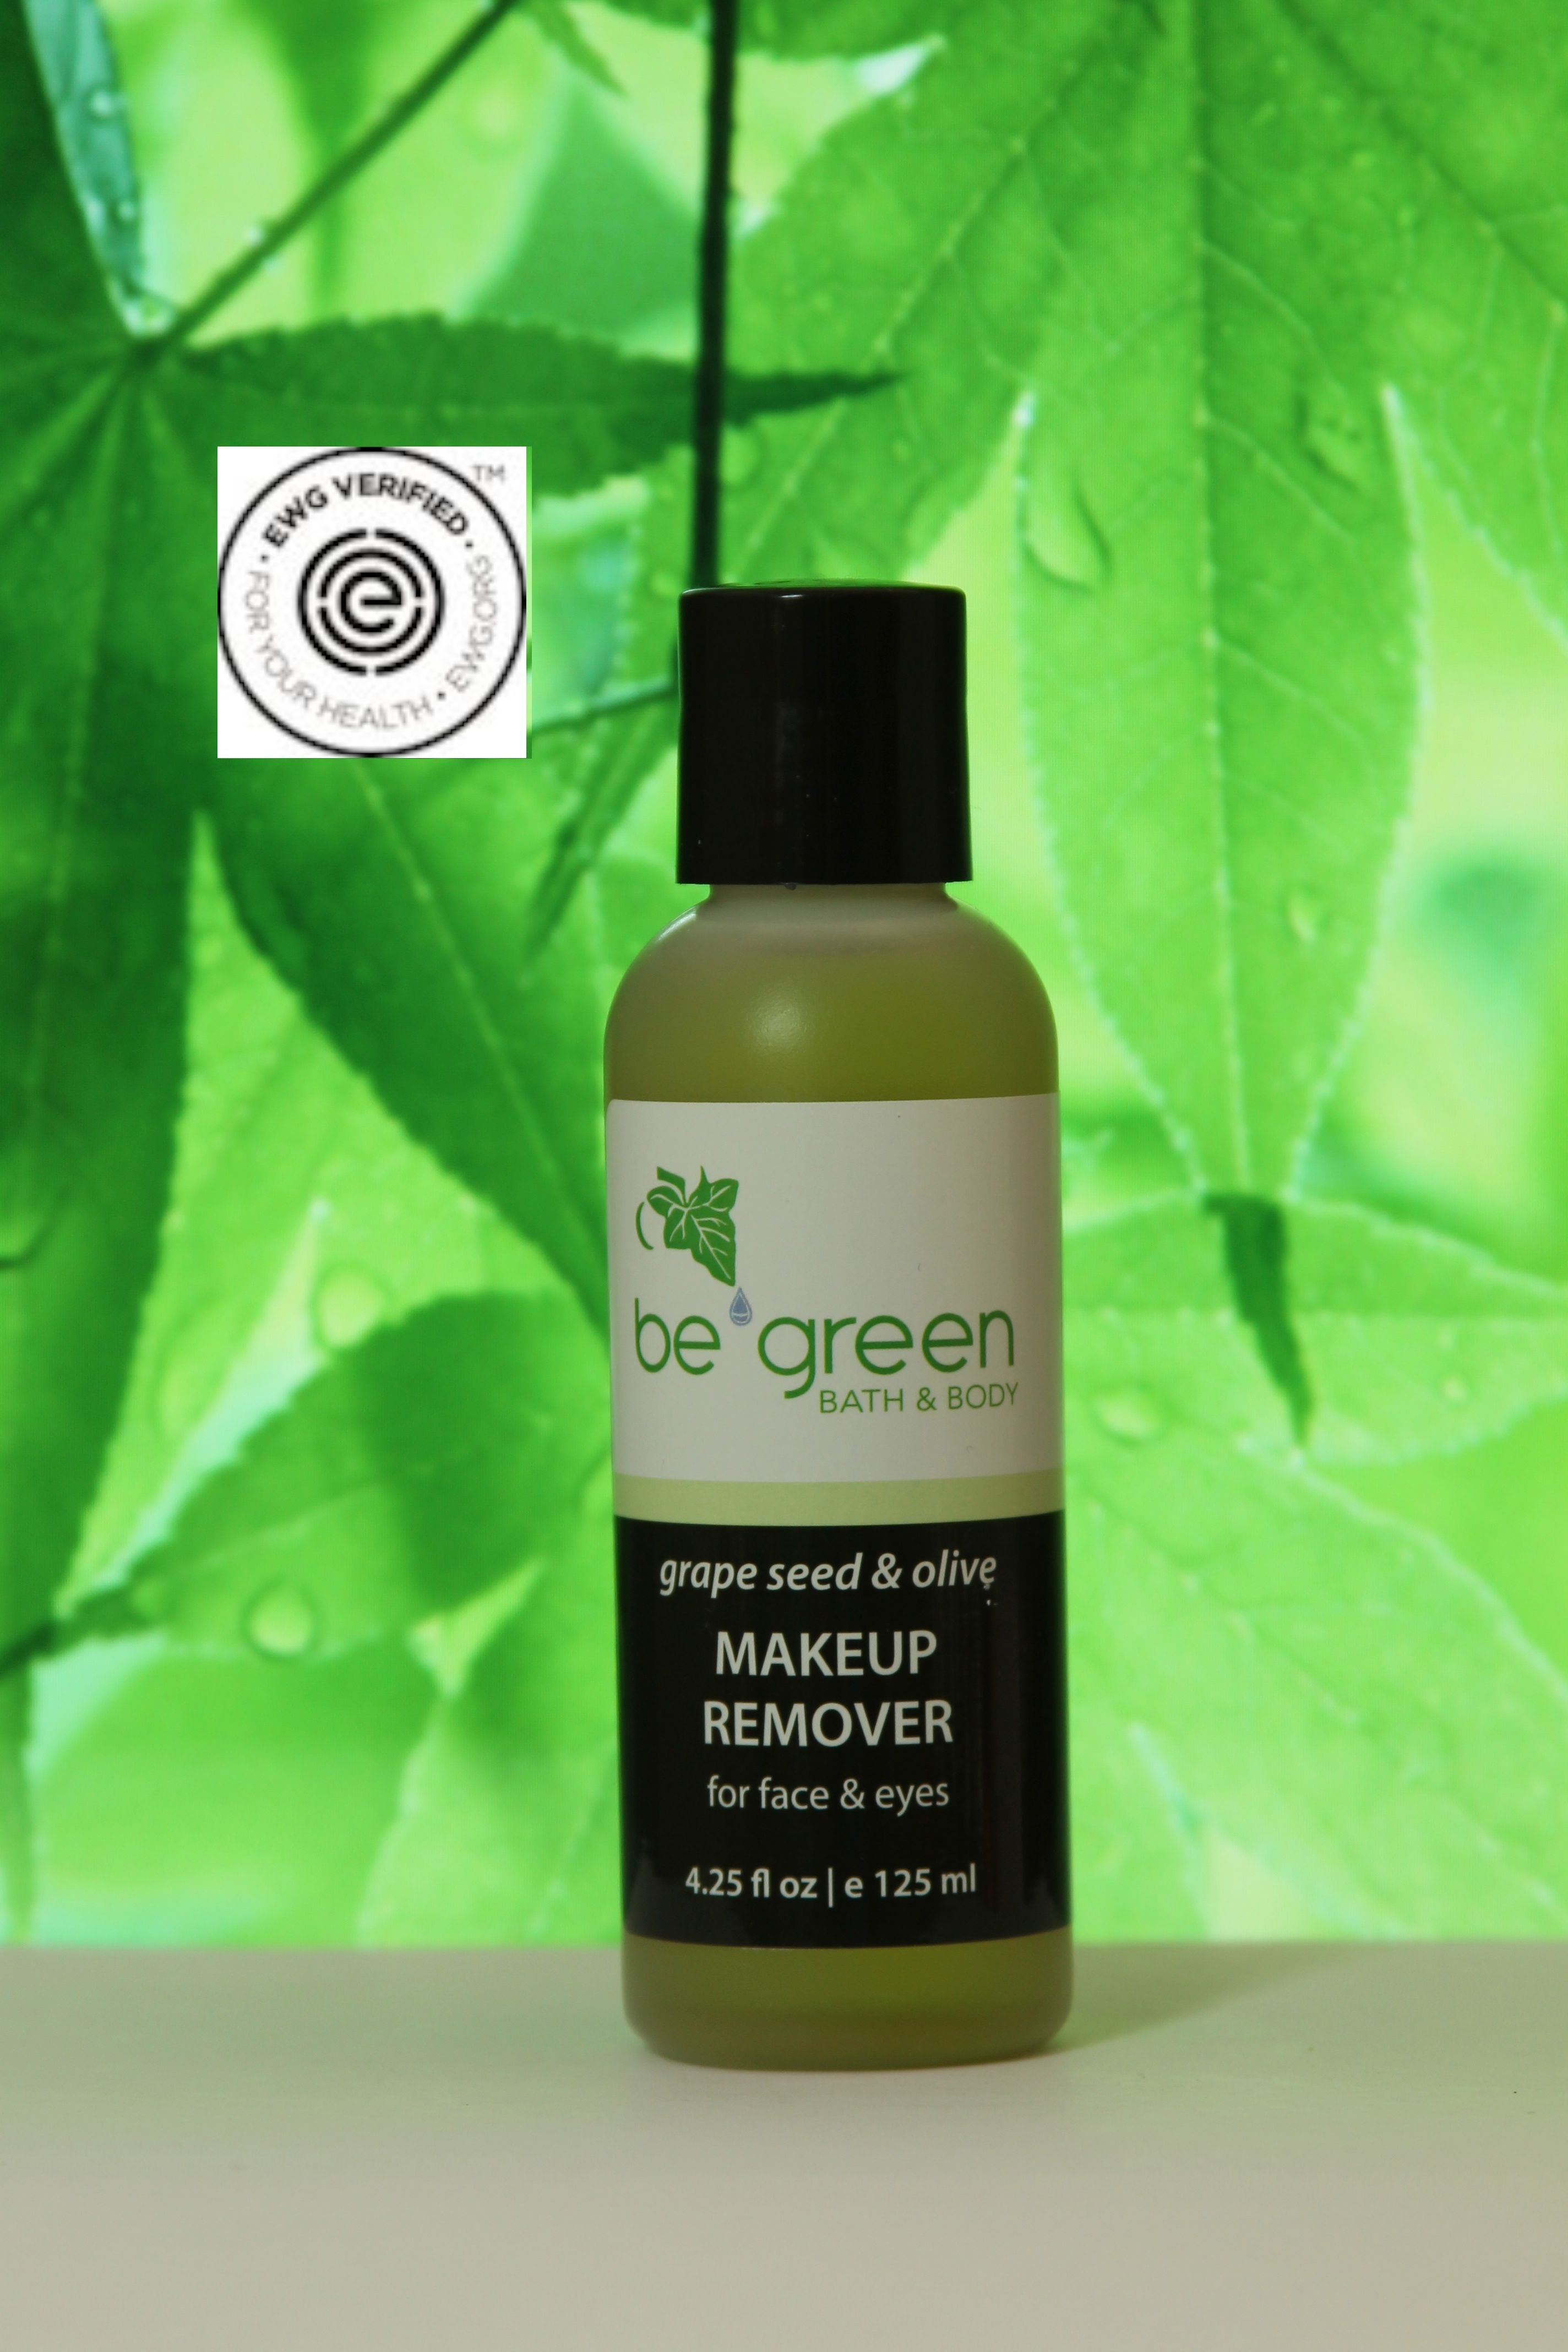 Makeup Remover Body oil, Free essential oils, Healing oils